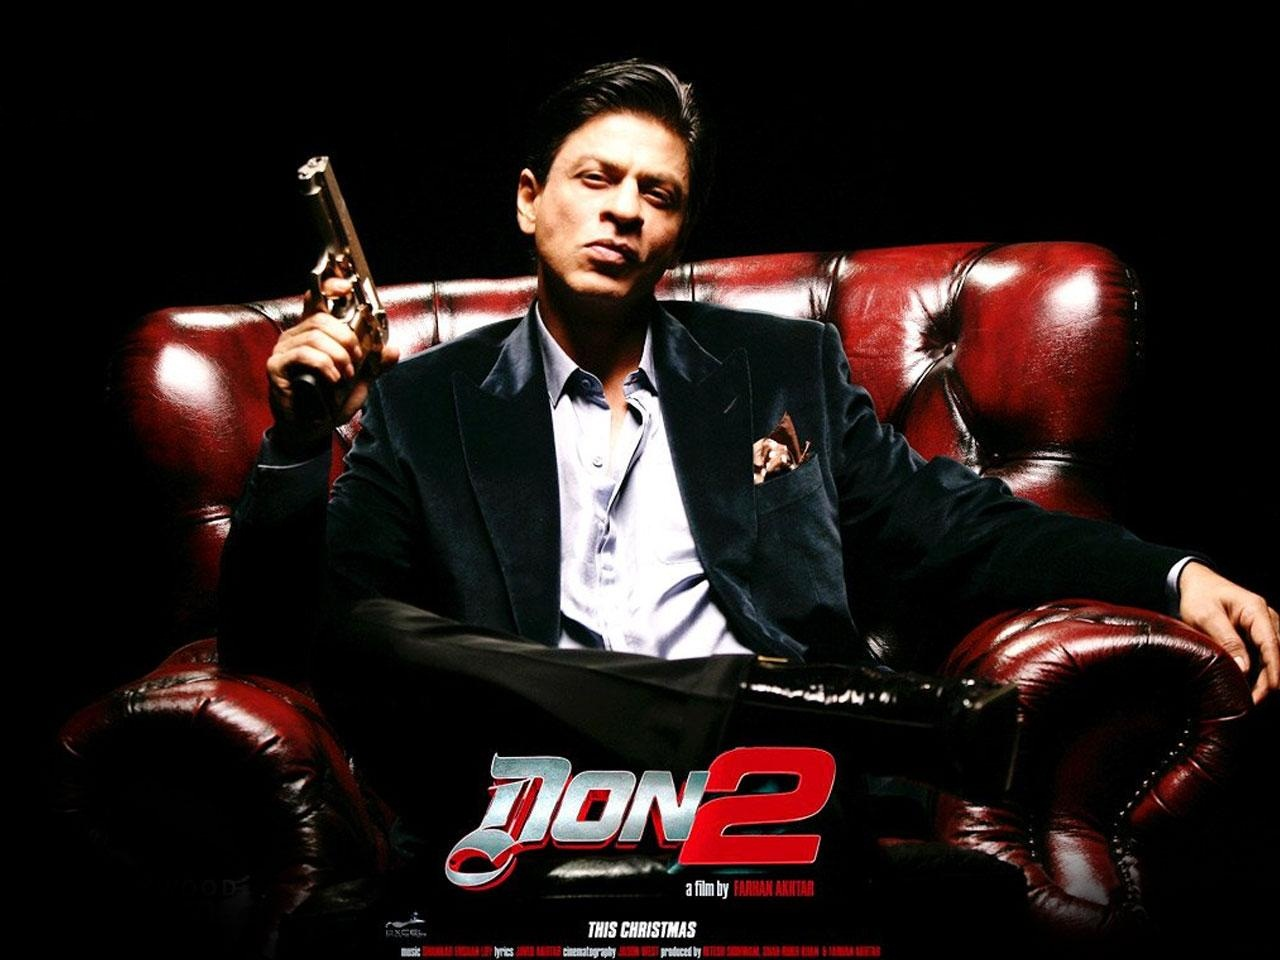 don 2 hd wallpapers | hd wallpaper